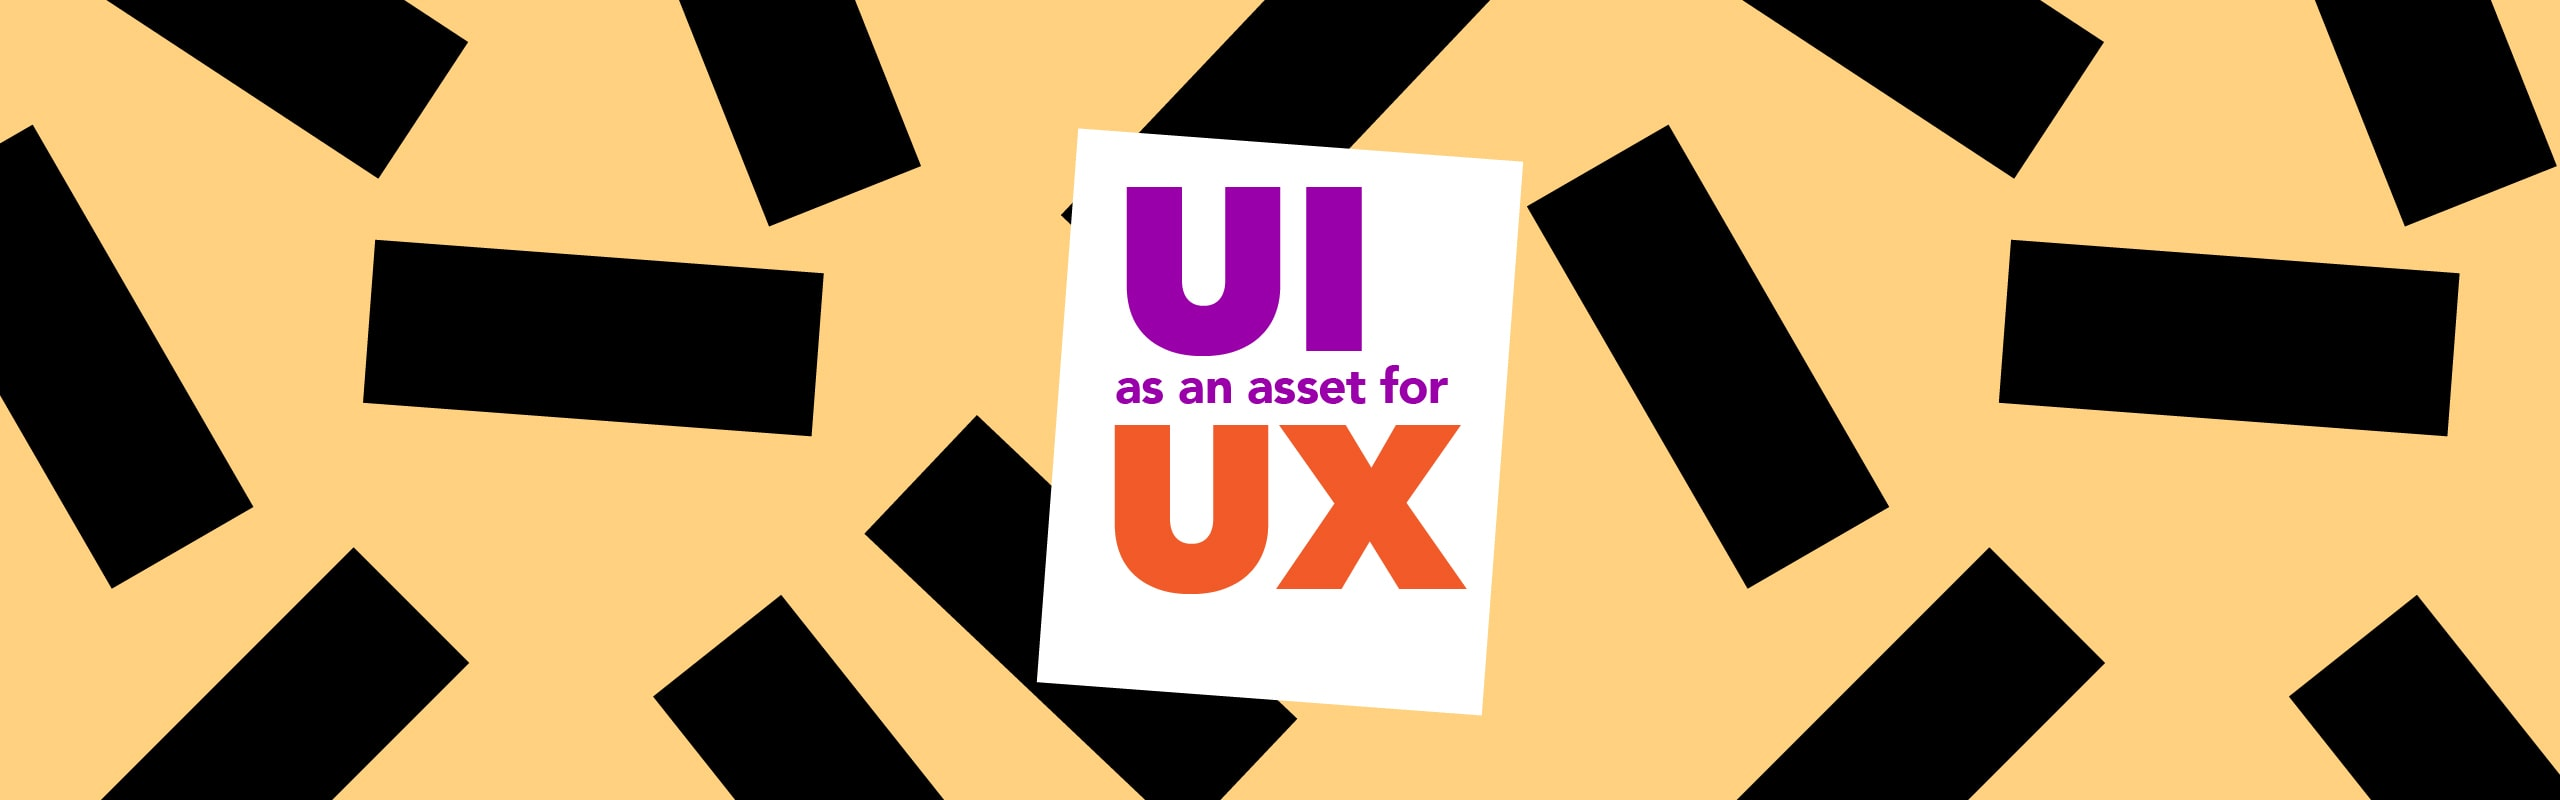 UI as an asset for UX